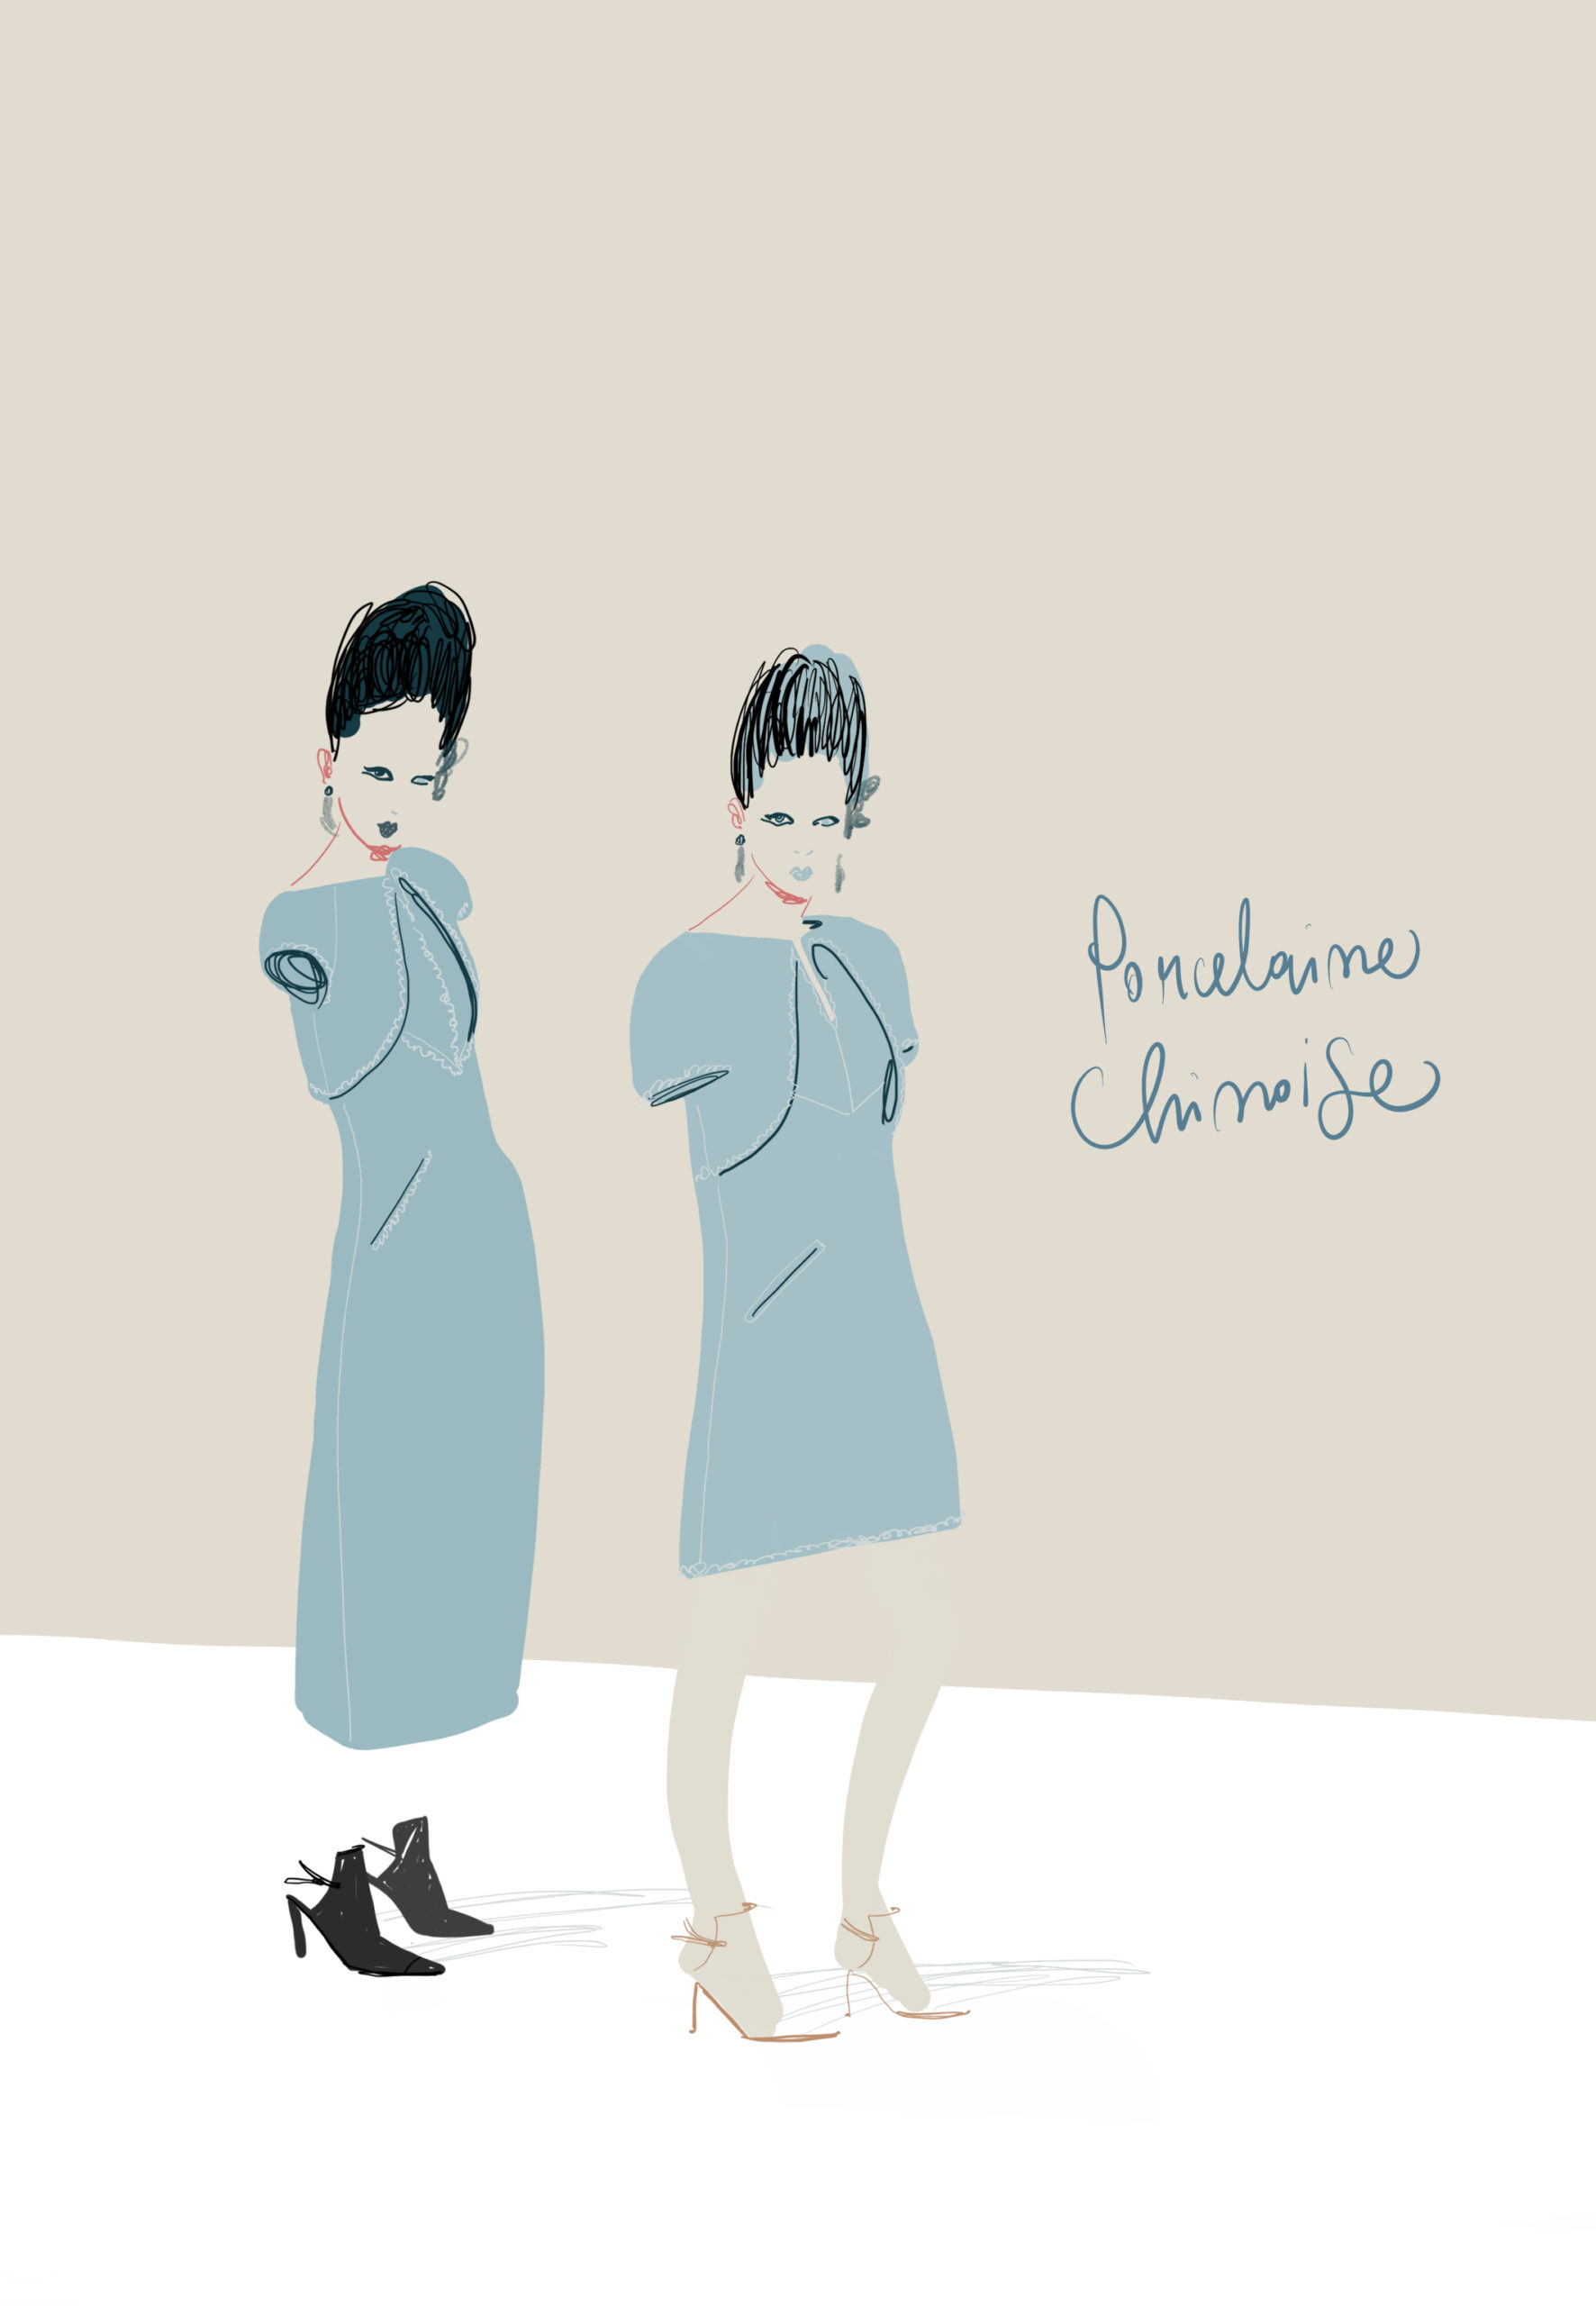 Chanel Couture illustration by Silvana Mariani